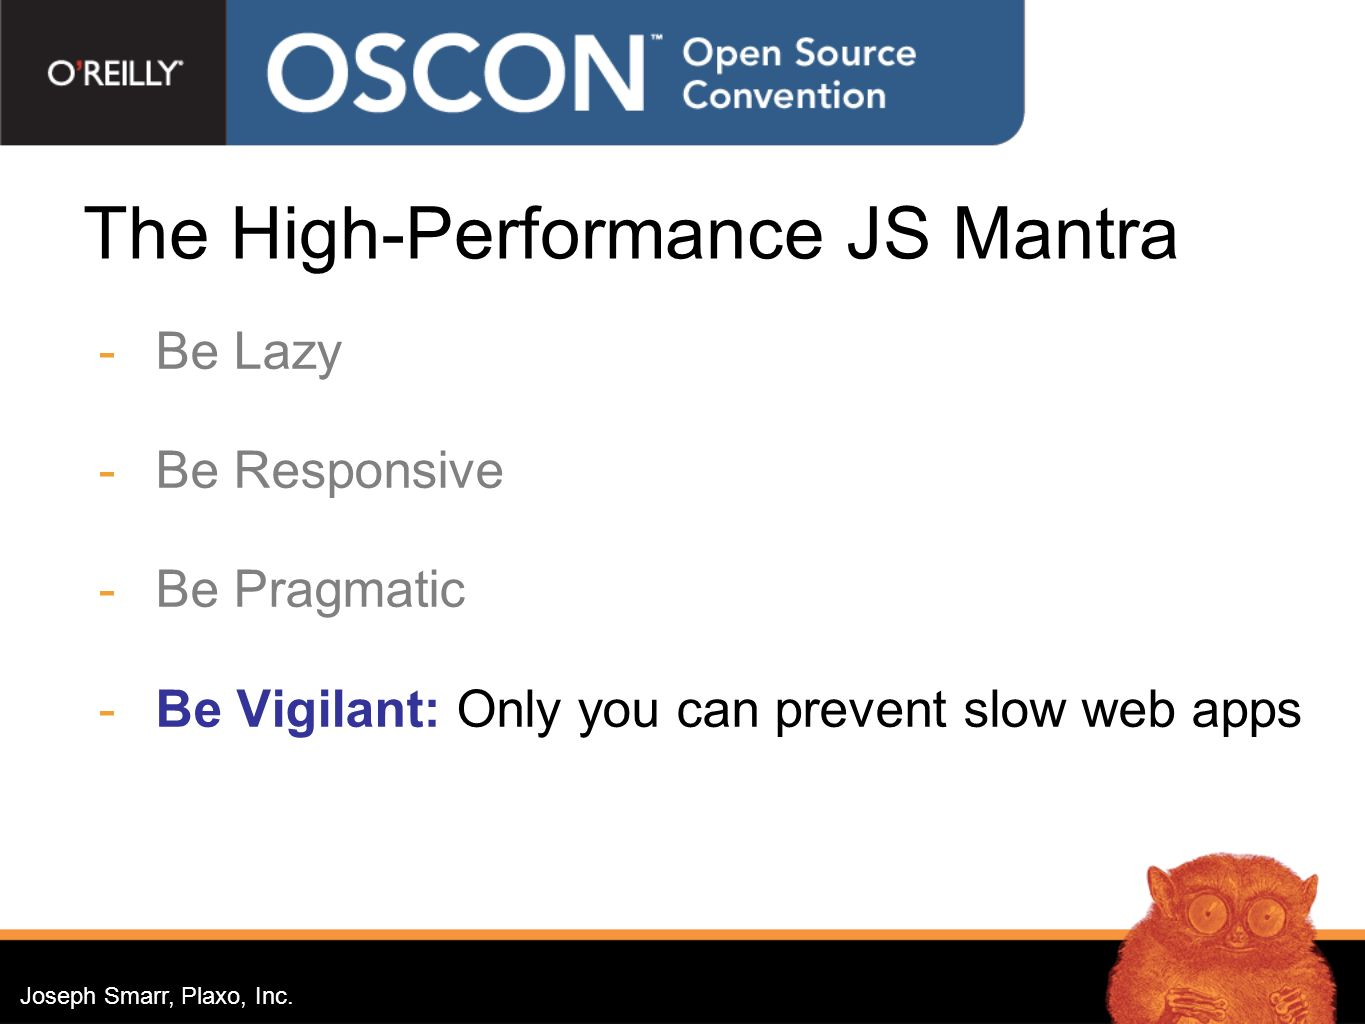 Joseph Smarr, Plaxo, Inc. The High-Performance JS Mantra Be Lazy Be Responsive Be Pragmatic Be Vigilant: Only you can prevent slow web apps